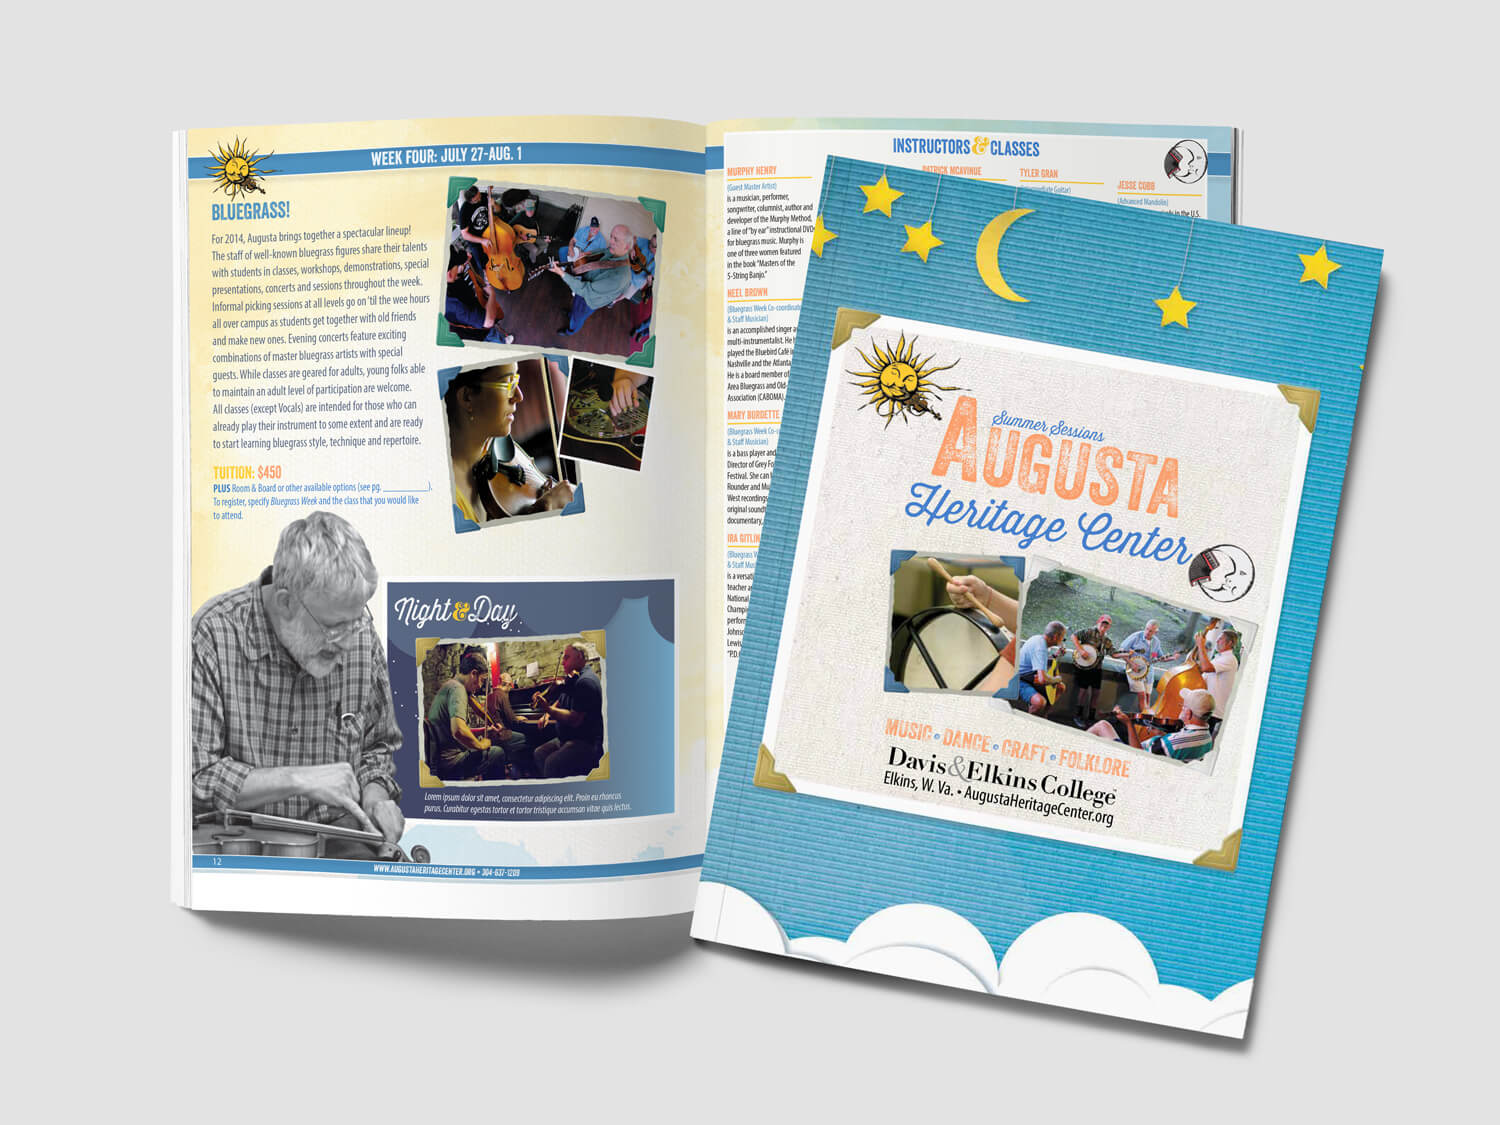 Design for heritage festival catalog of events and classes